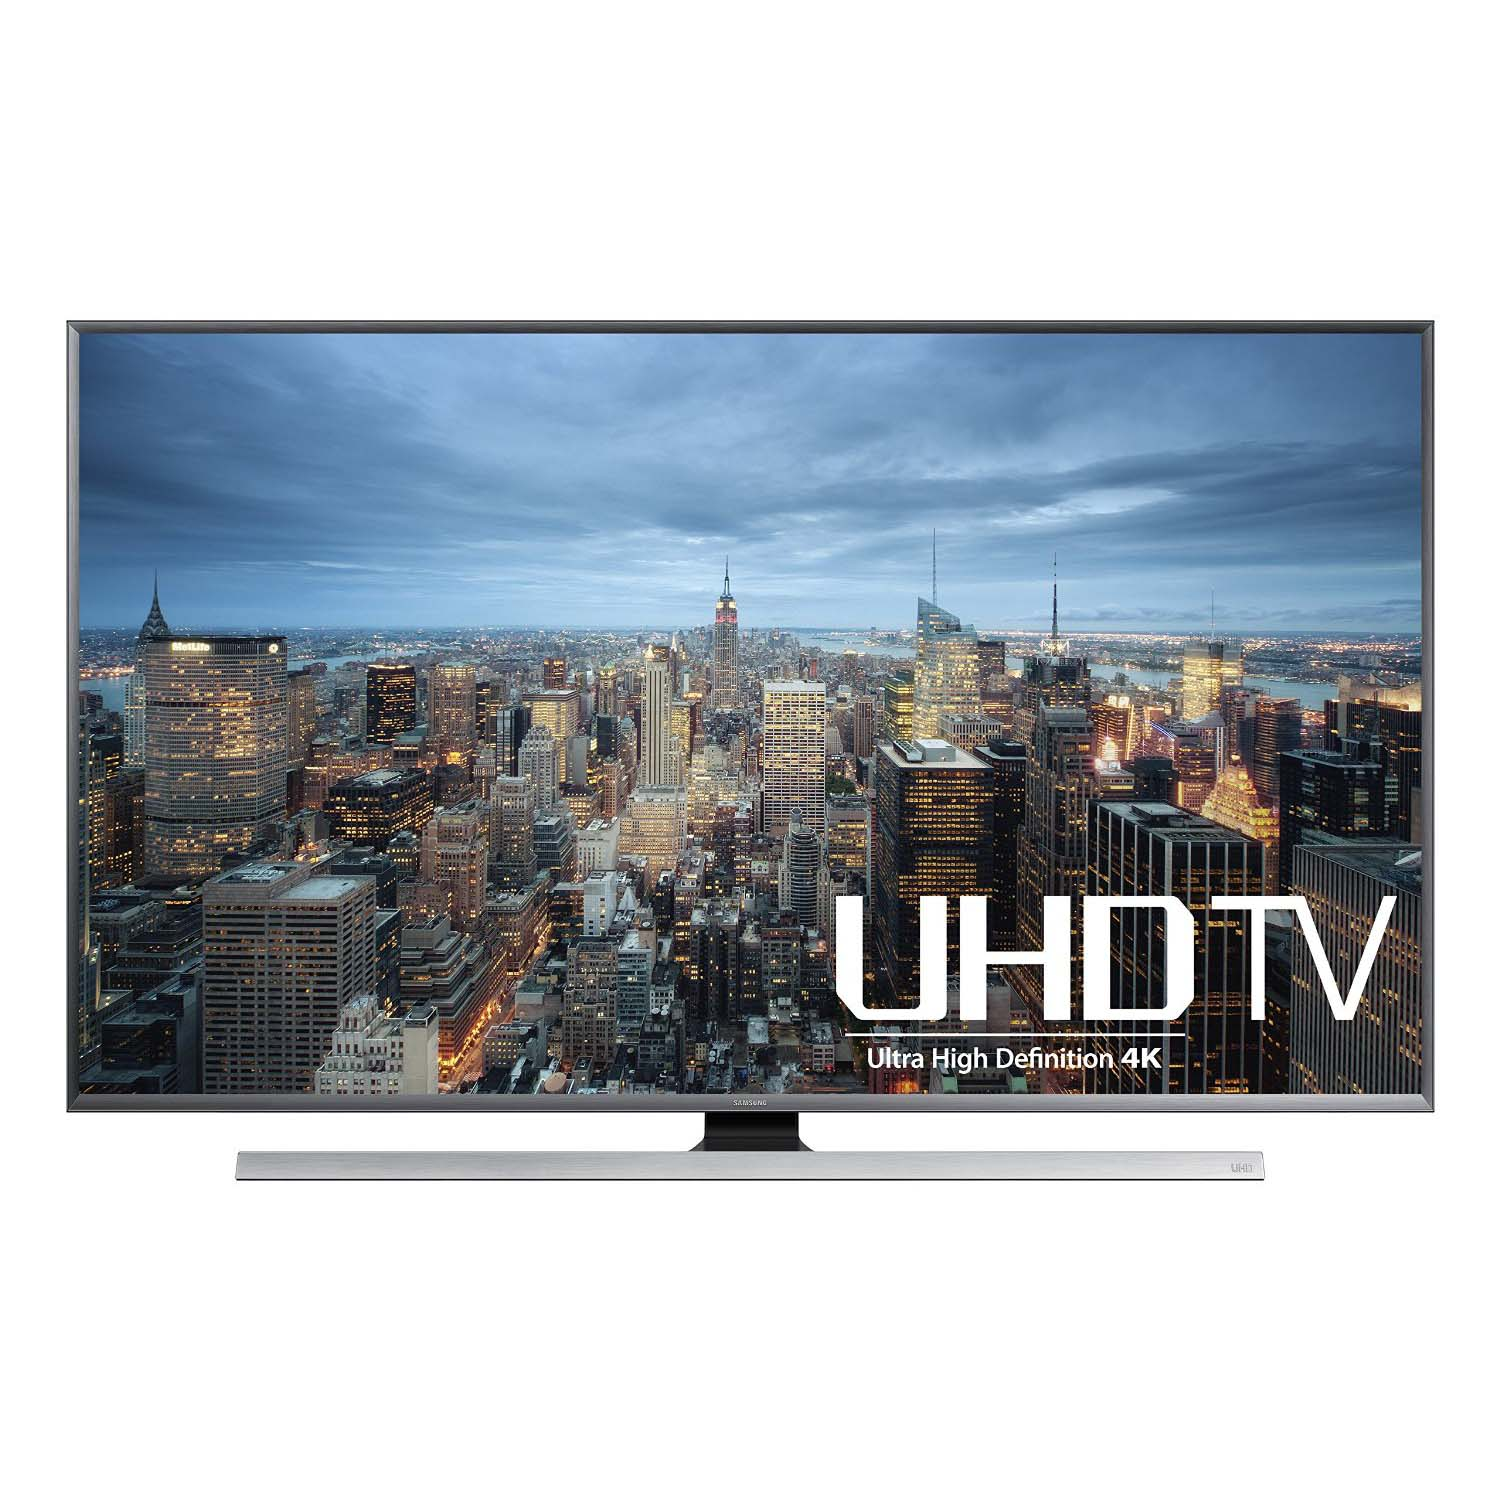 Samsung UN65JU7100 65-Inch 4K Ultra HD 3D Smart LED TV (2015 Model) *관부가세 별도*